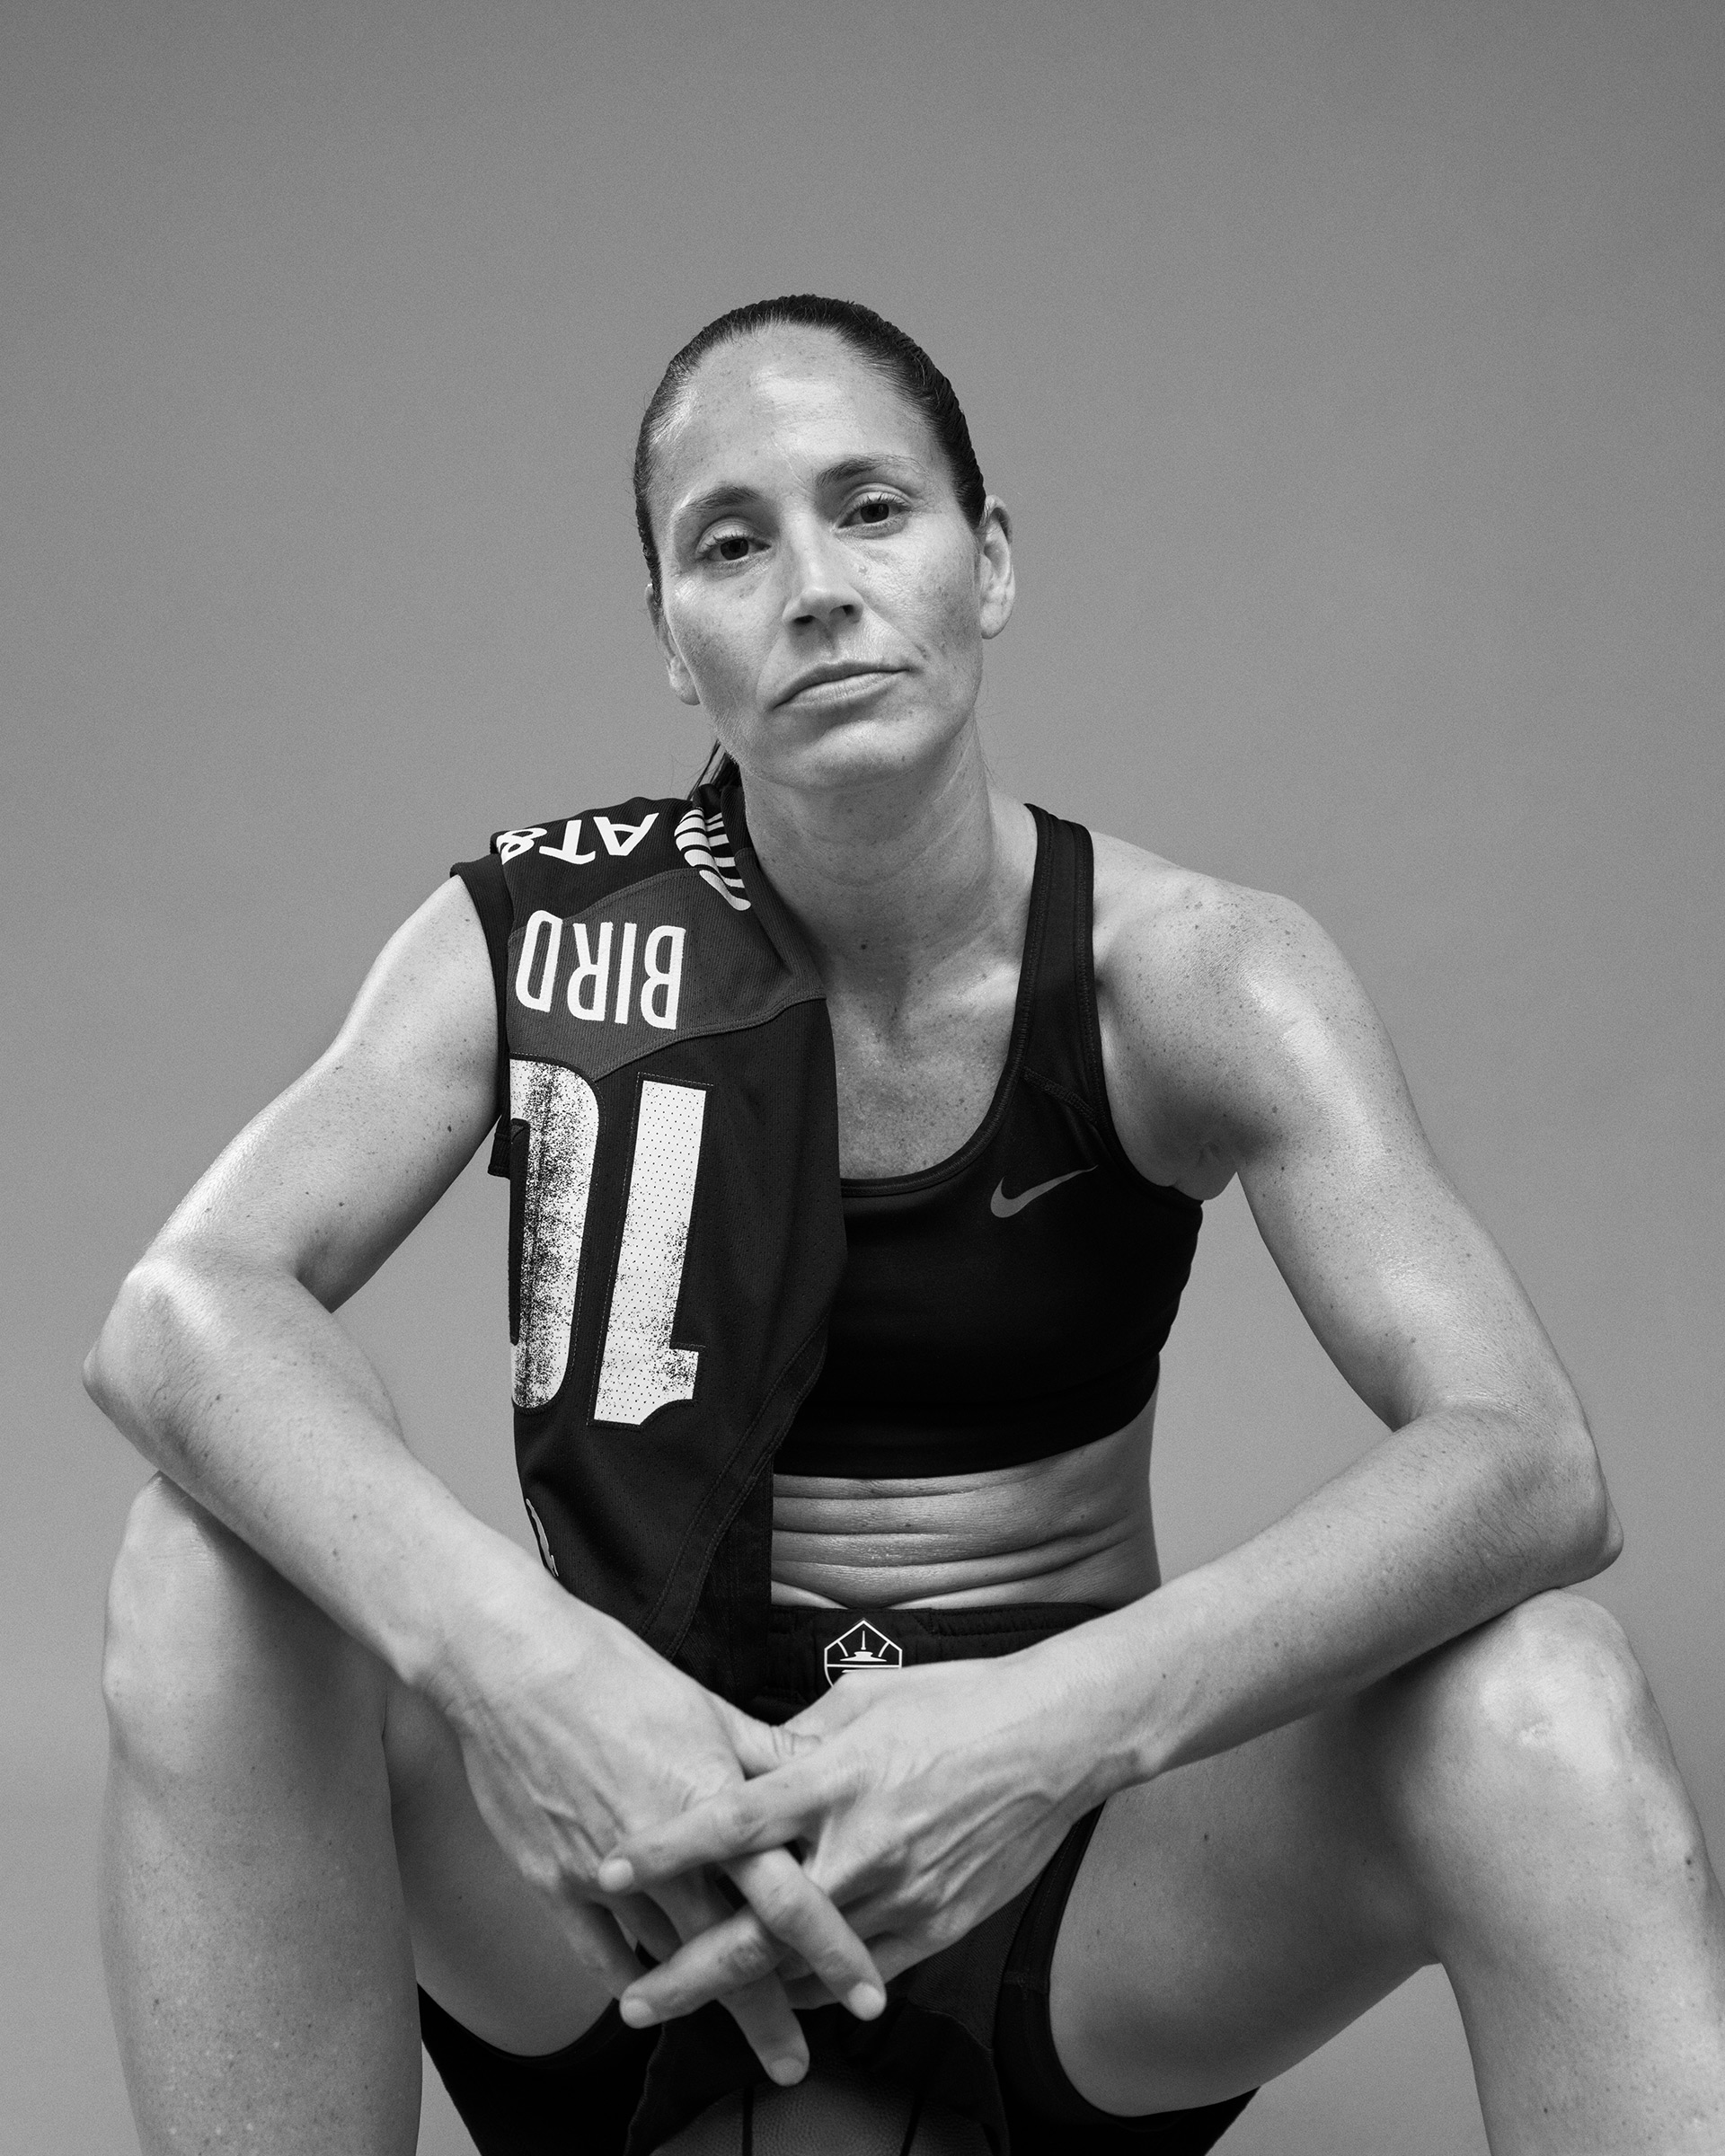 At 40, Bird—still one of the WNBA's best passers and shooters—shows few signs of slowing